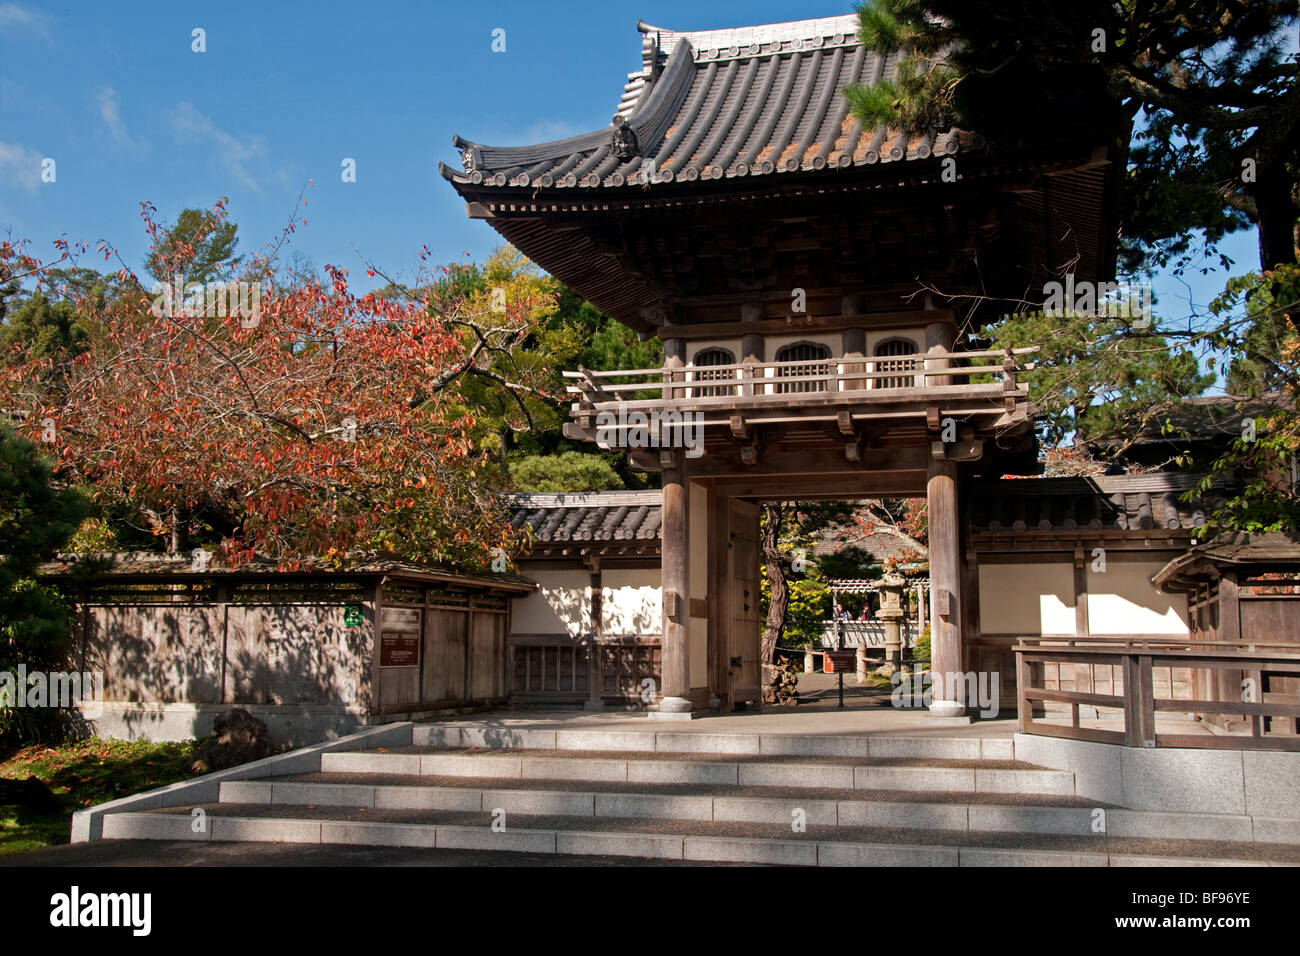 Japanese House Entrance Stock Photos & Japanese House Entrance Stock ...